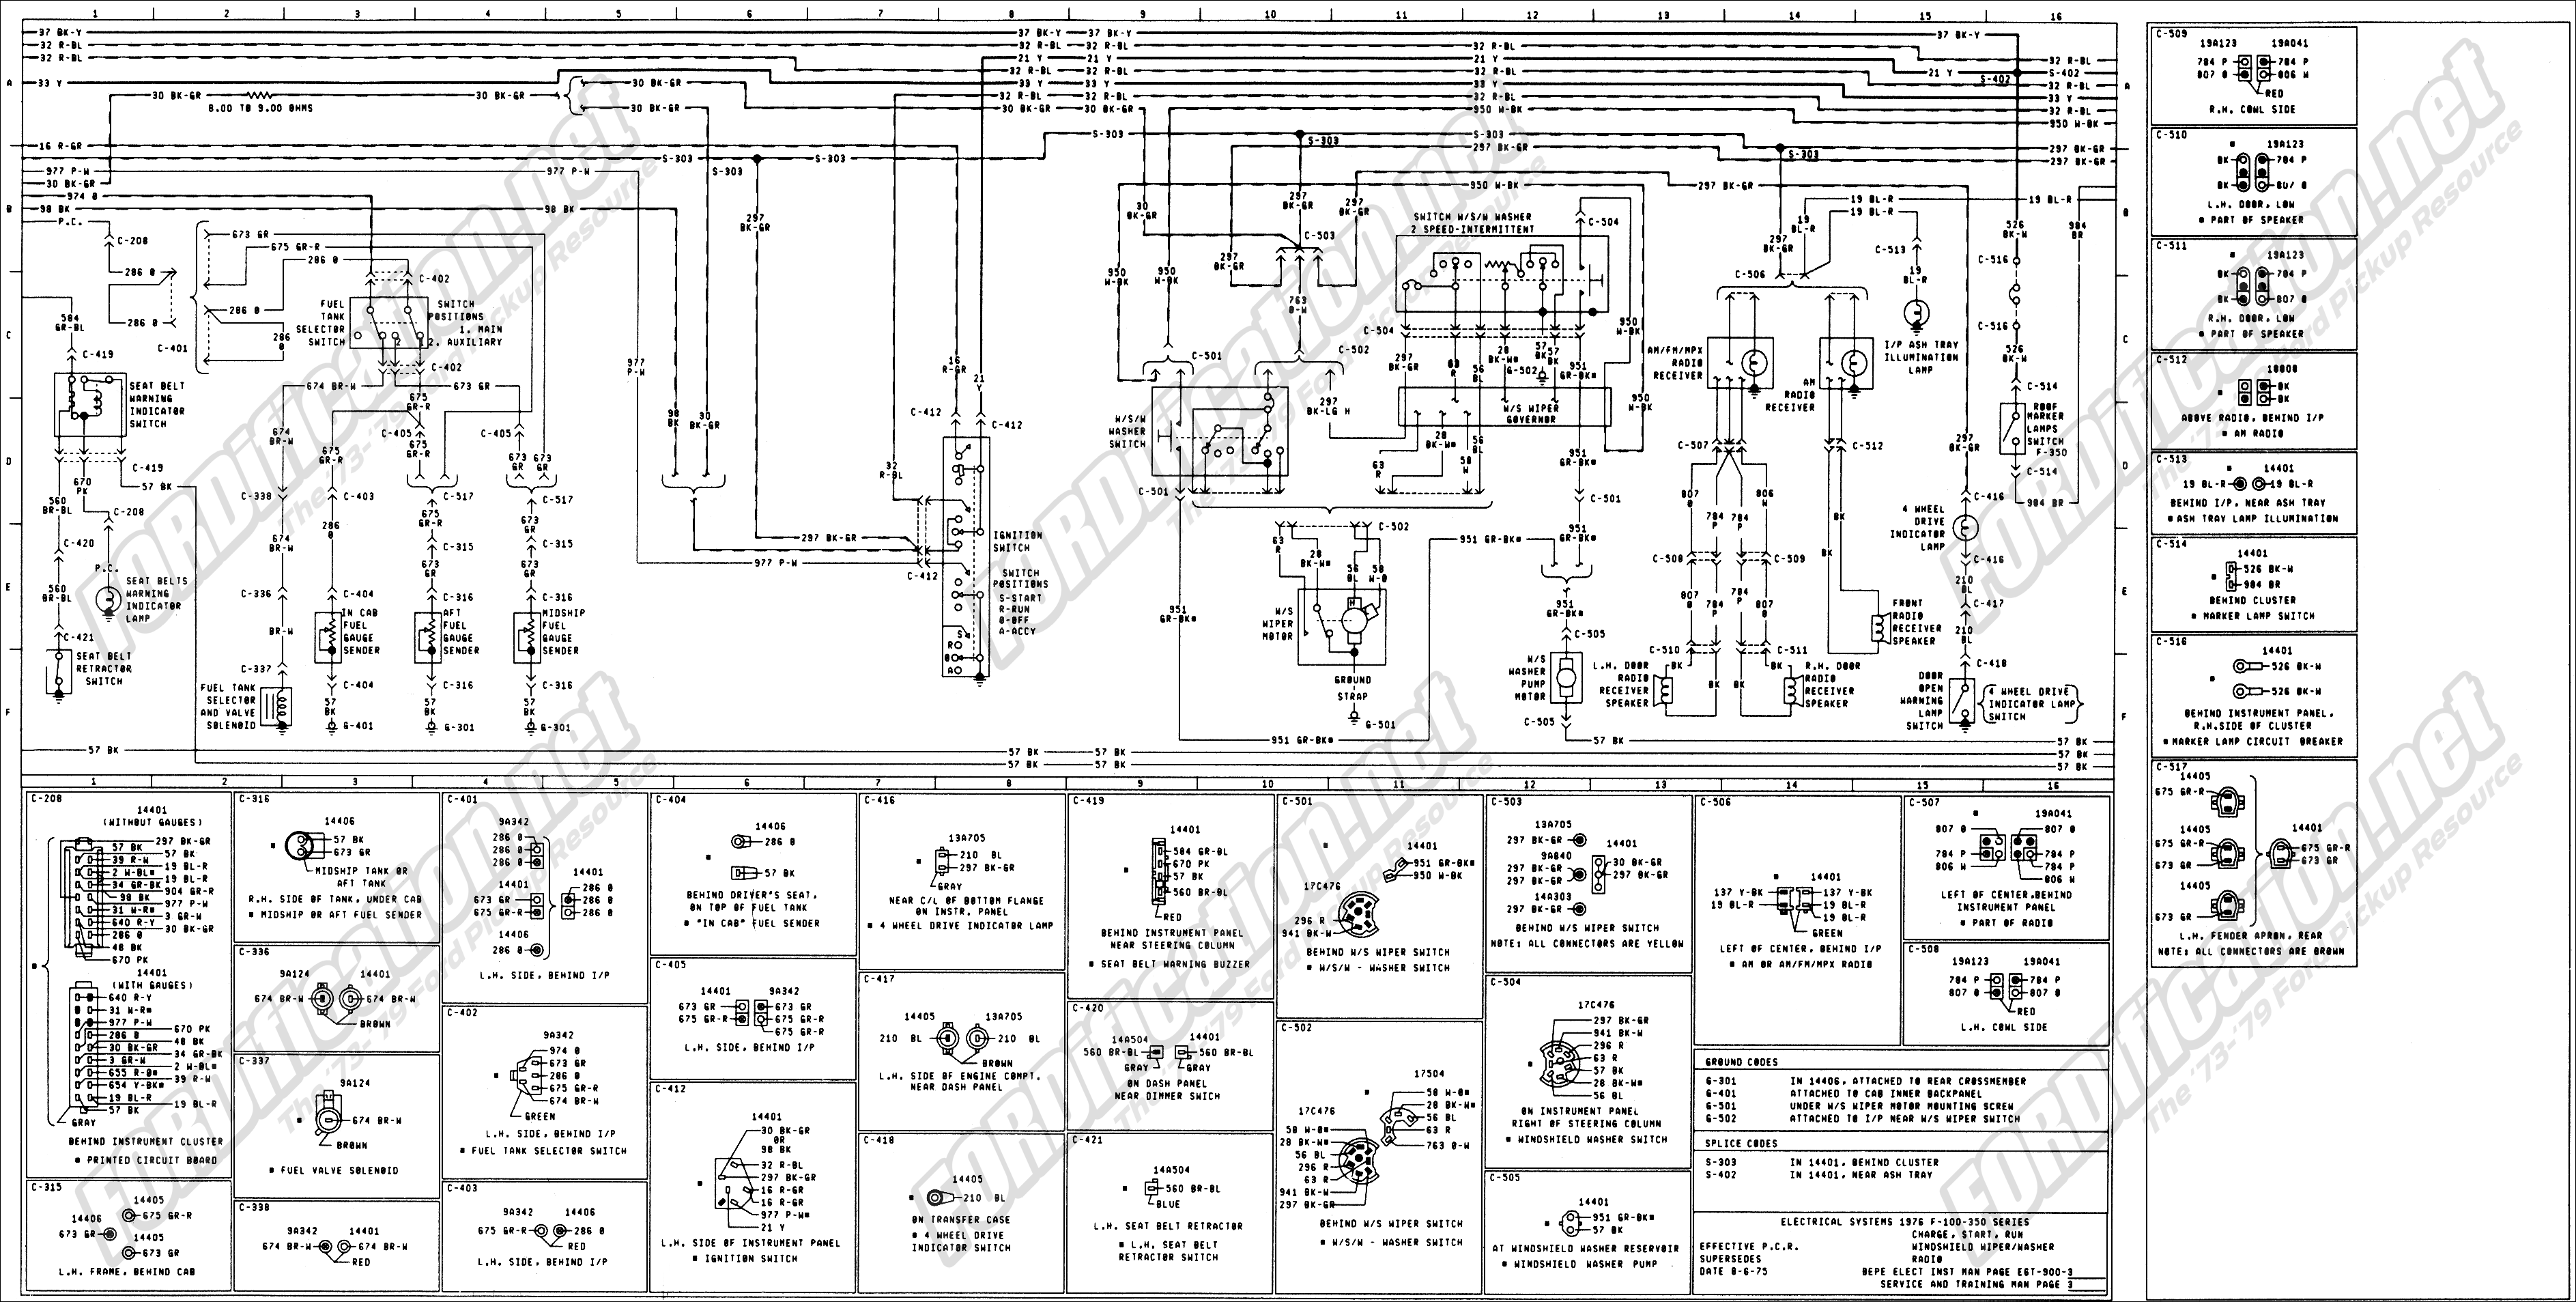 wiring_76master_3of9 1987 ford f 250 wiring diagram wiring diagram simonand 1979 ford f100 fuse box diagram at bayanpartner.co